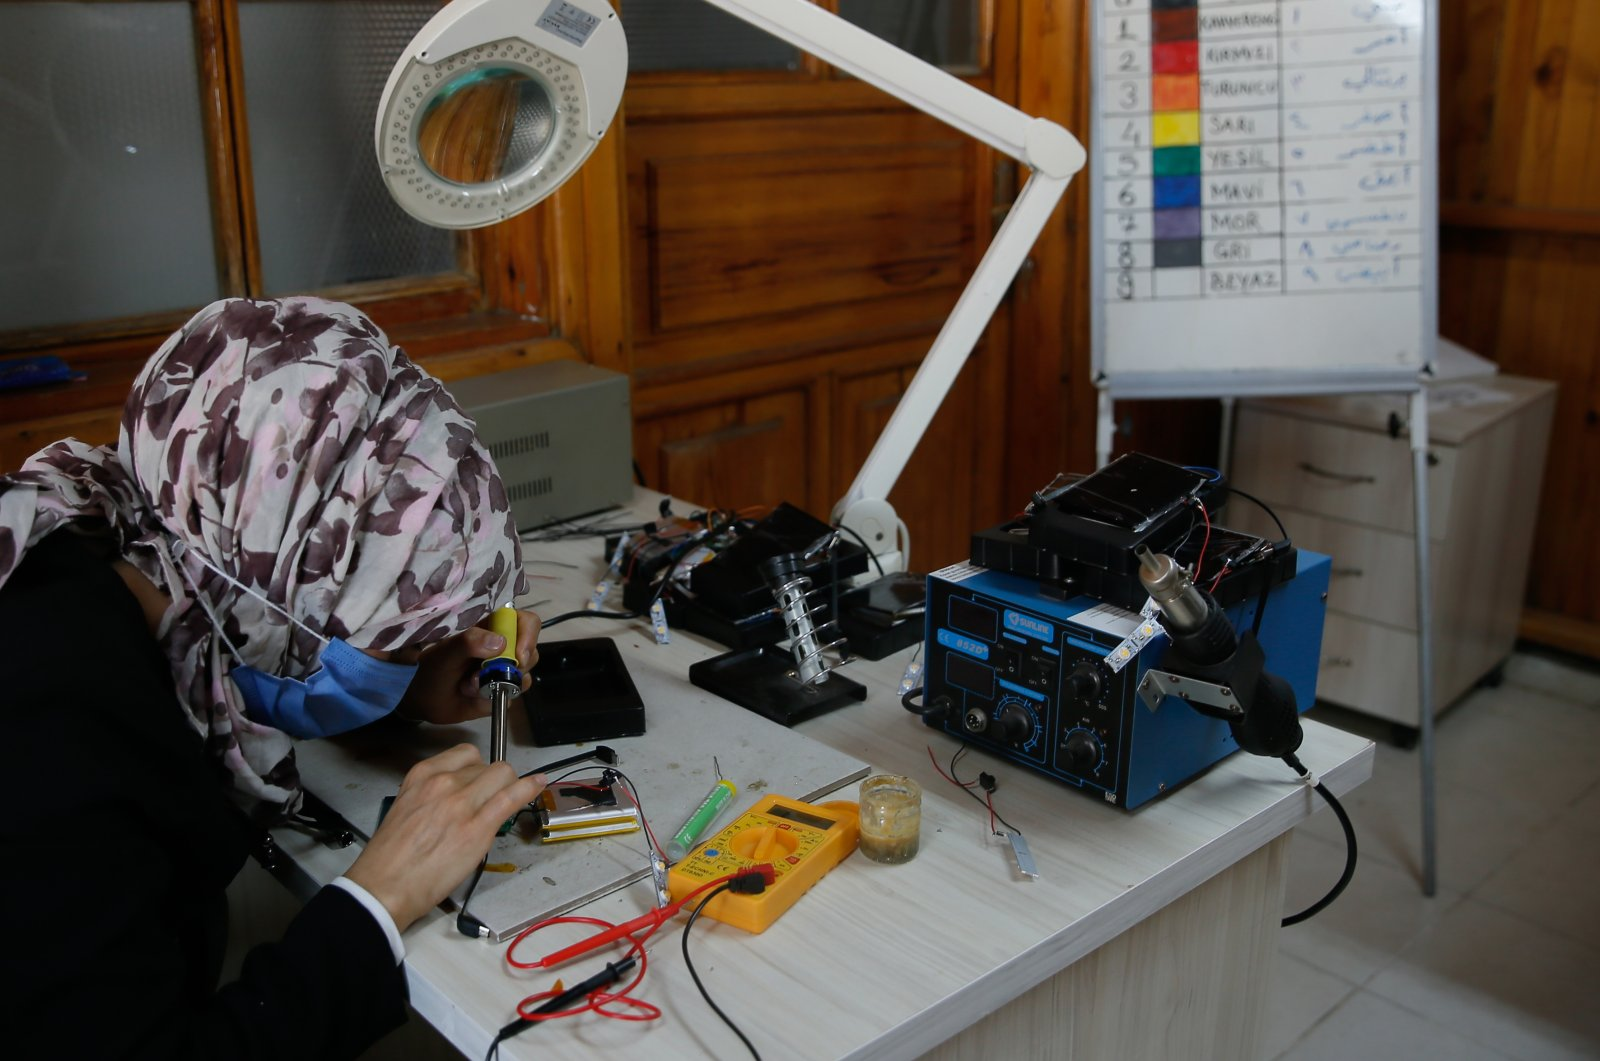 A woman builds a power bank in a workshop, in Izmir, western Turkey, July 2, 2021. (AA PHOTO)